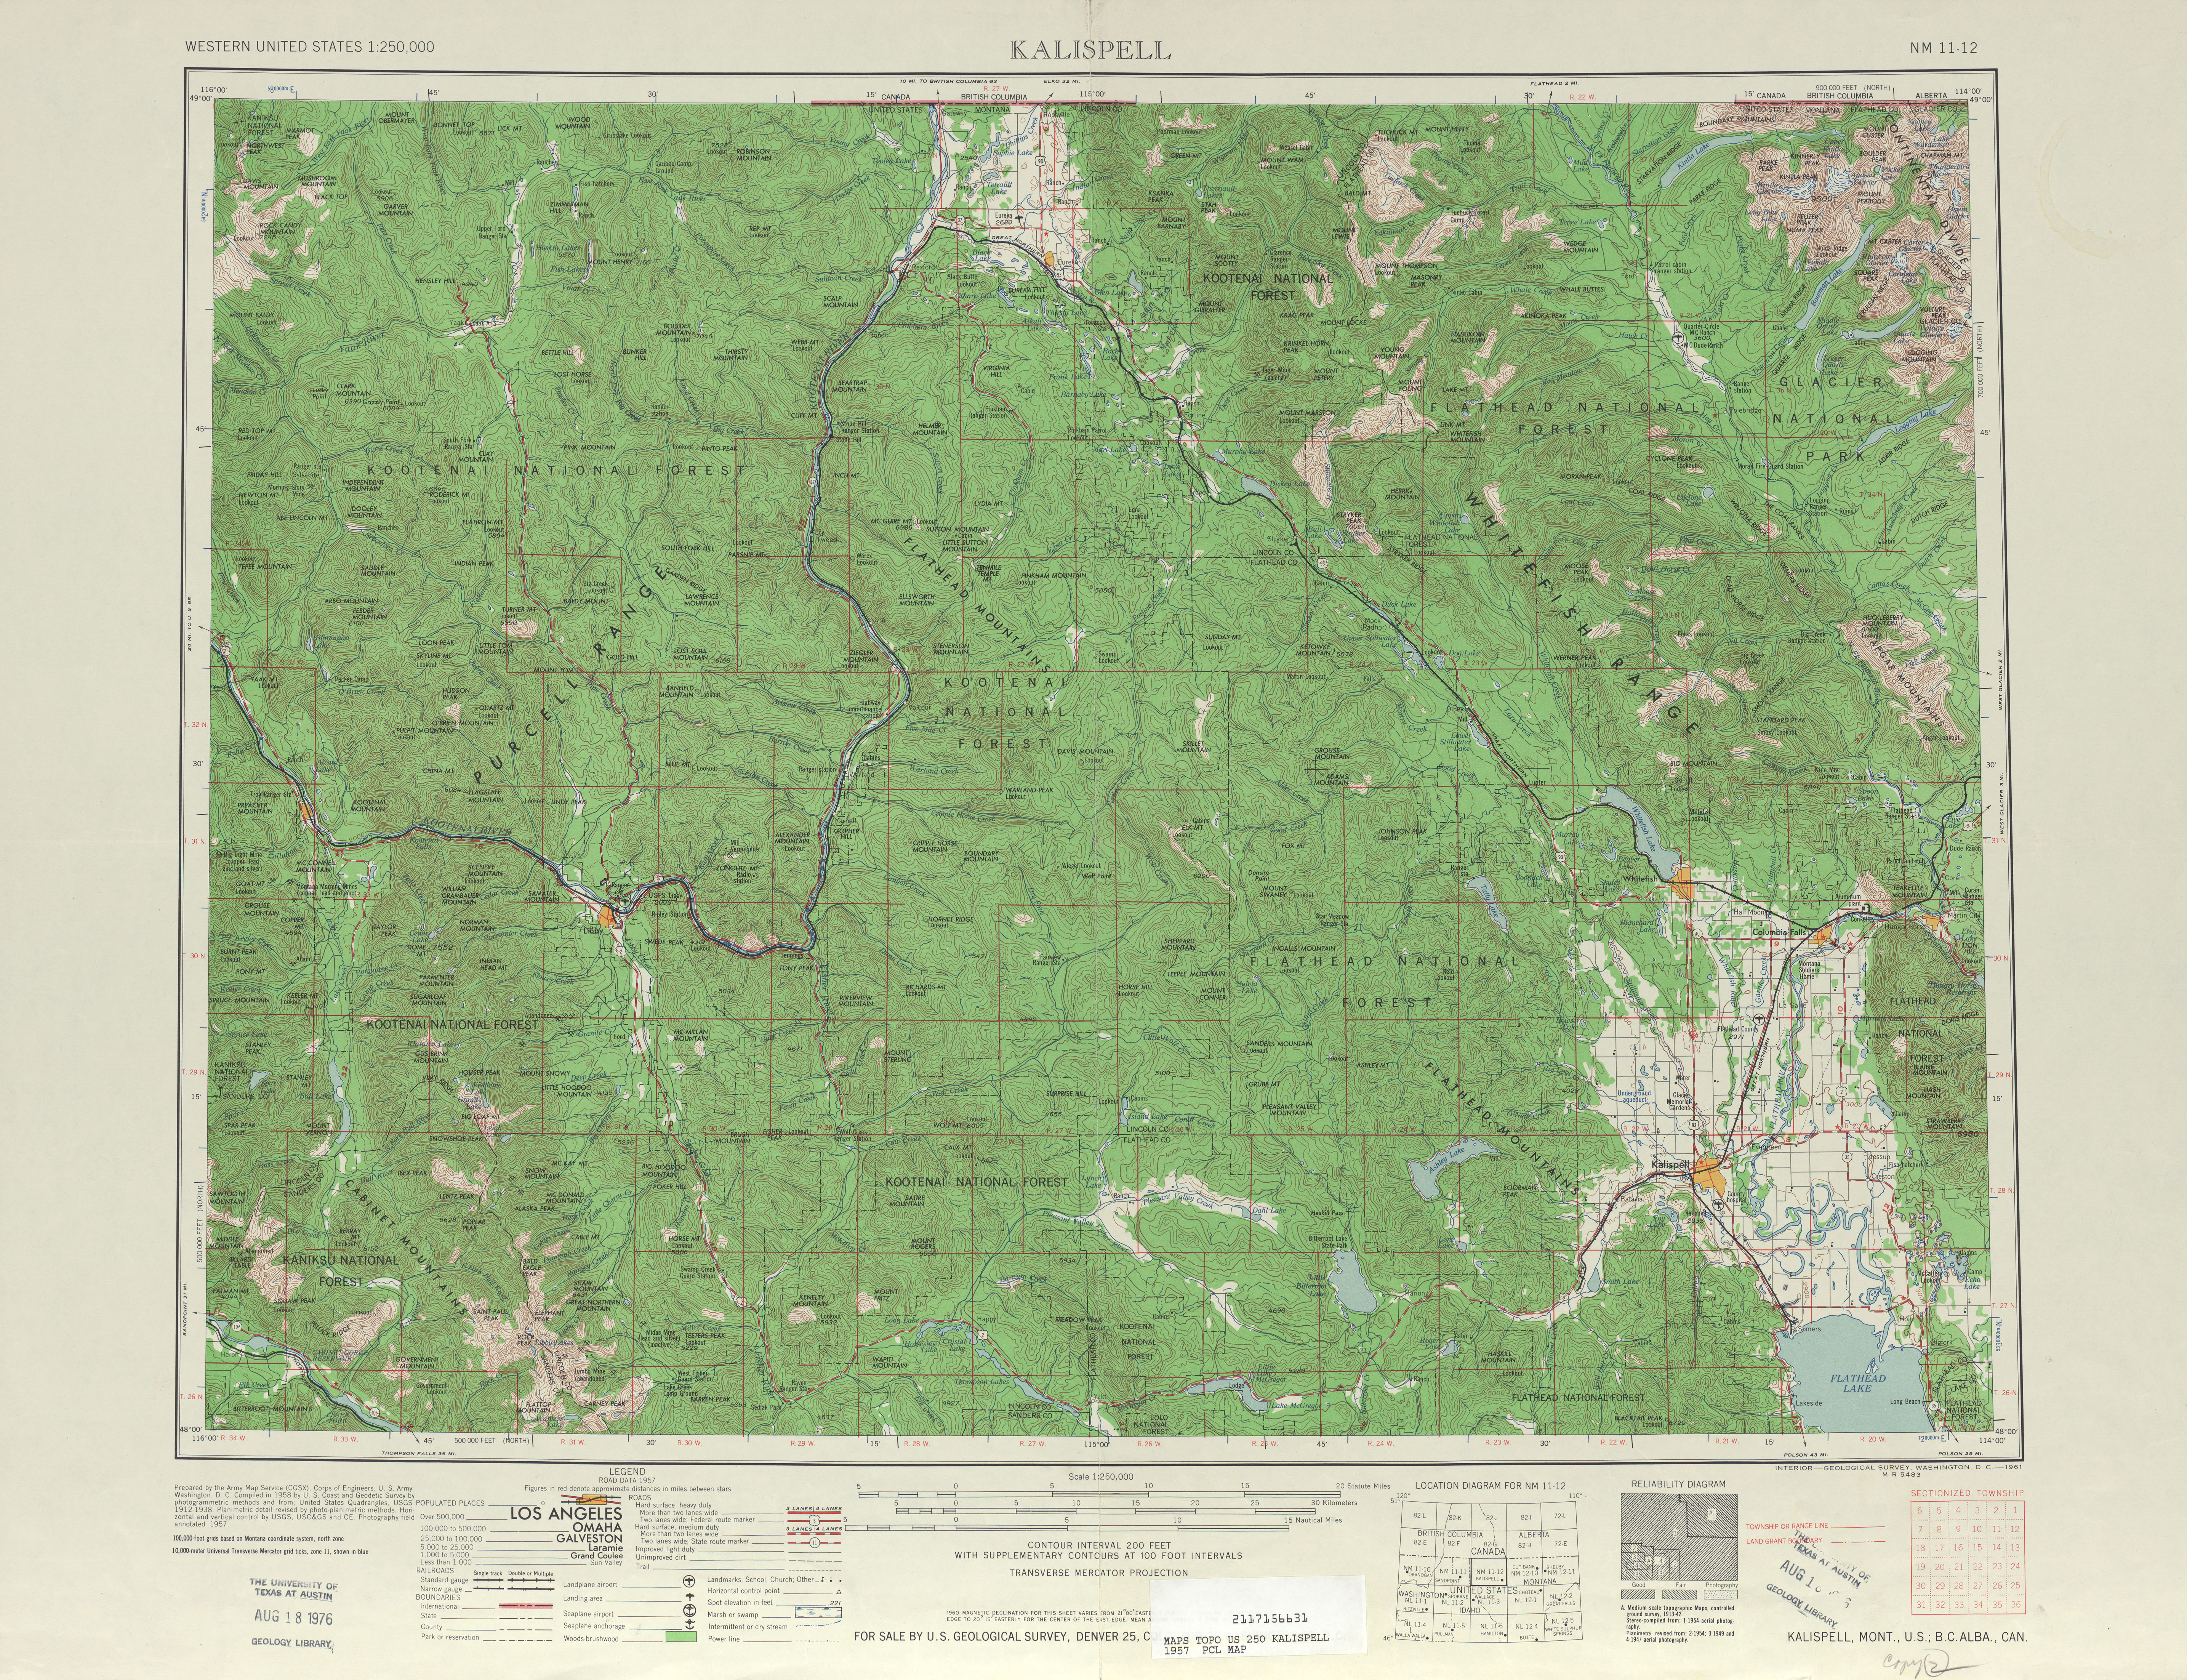 Kalispell Topographic Map Sheet, United States 1957